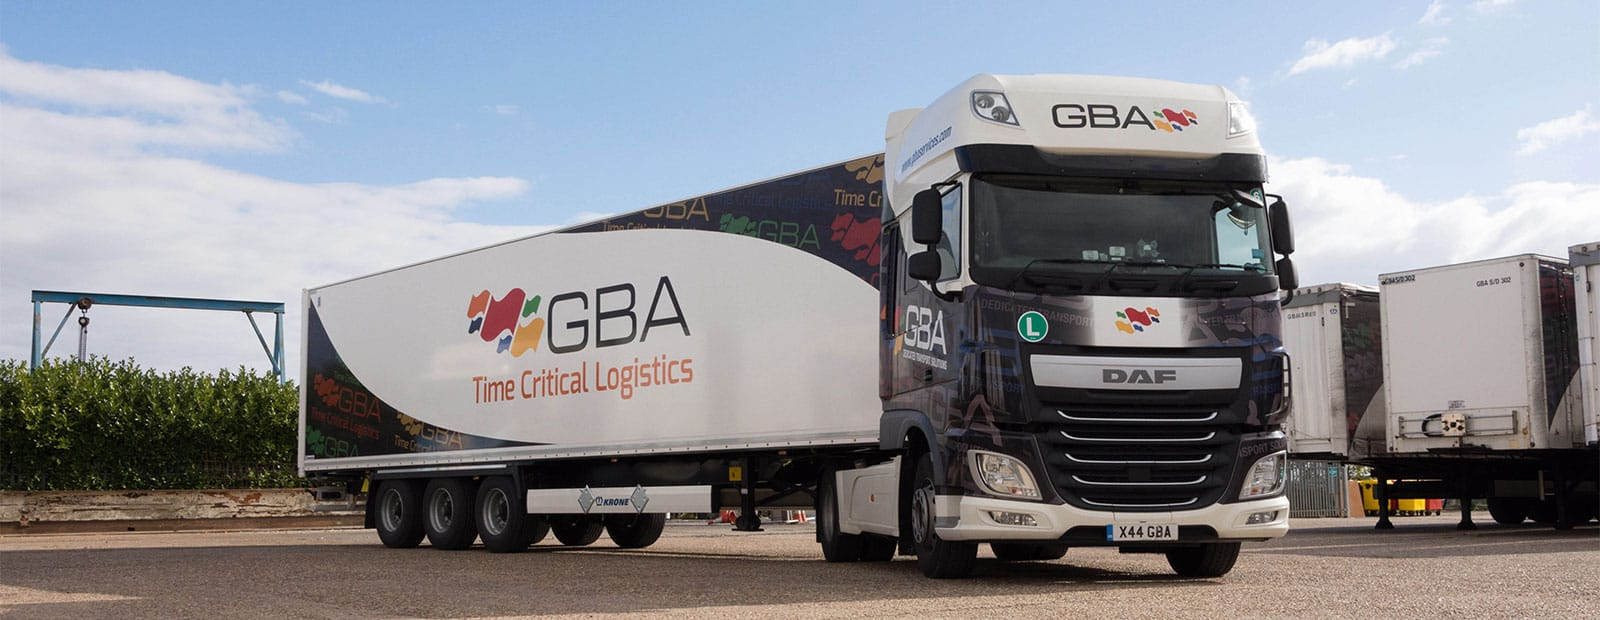 GBA Services returns to Krone for 'trouble-free' service